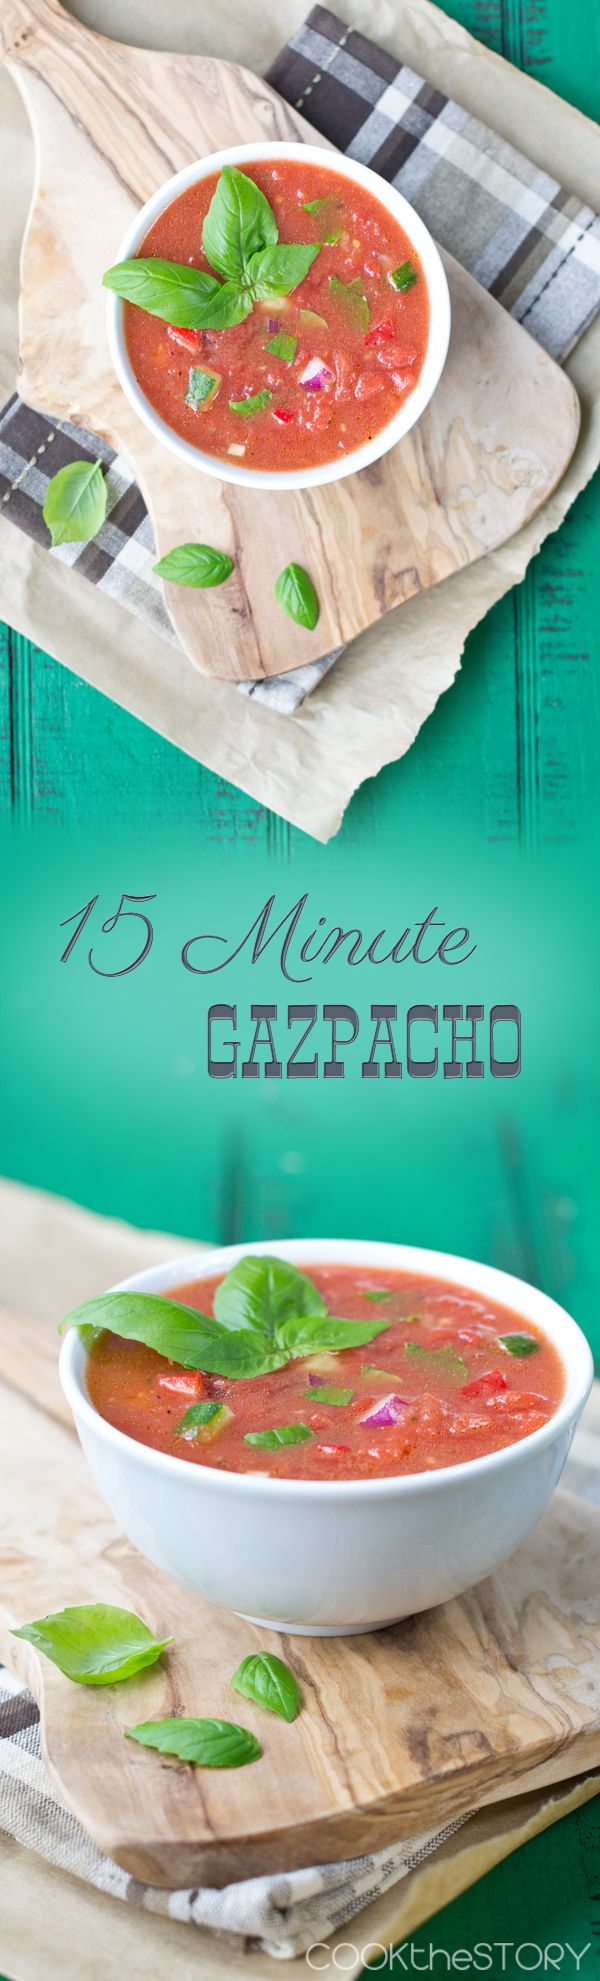 An easy Gazpacho recipe perfect for the summer months ahead! - This chilled soup uses fresh summer vegetables and is ready in 15 minutes